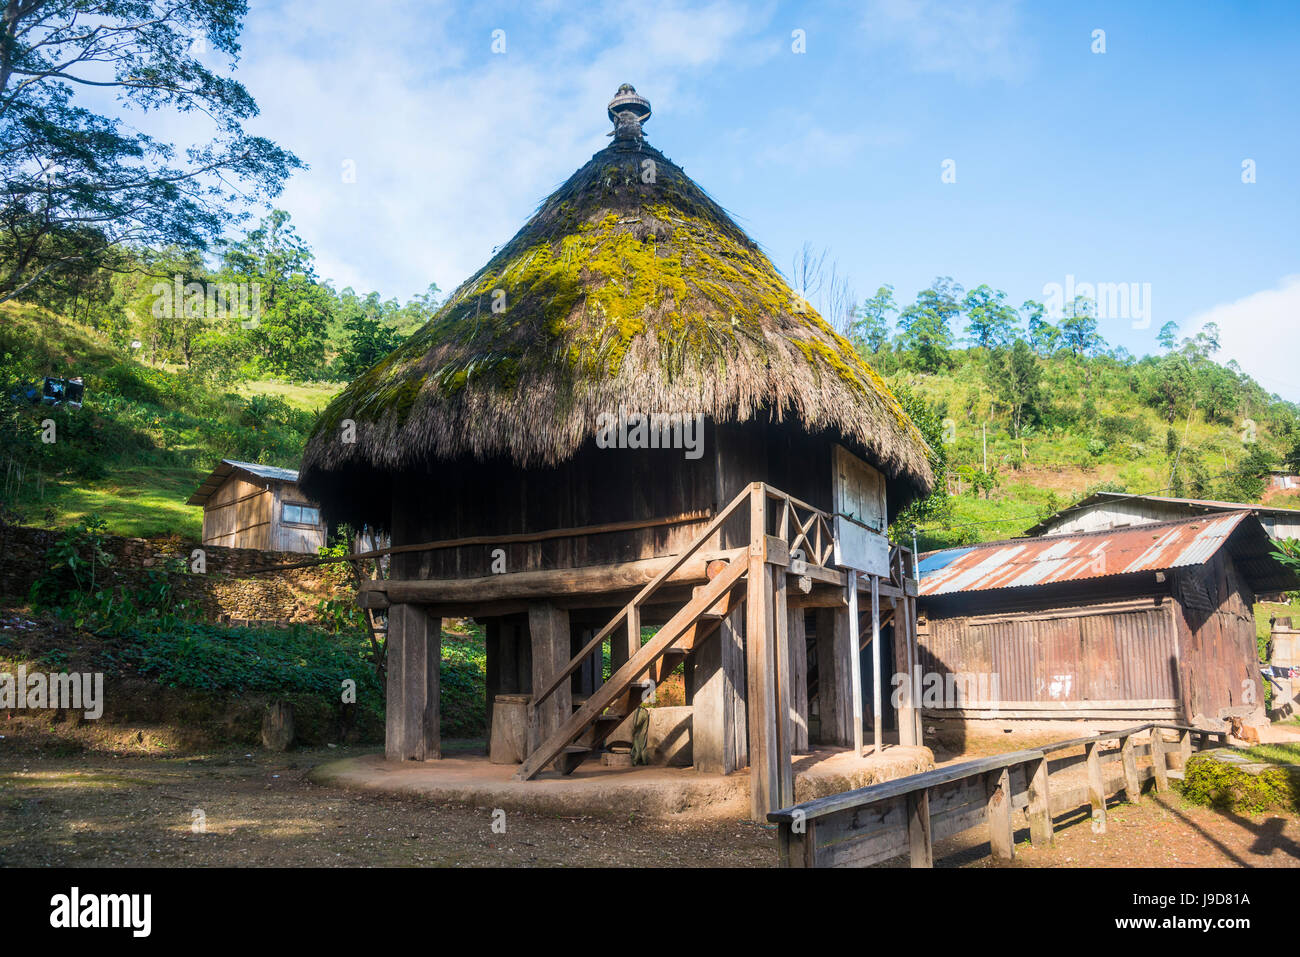 Traditional house in the mountains of Aileu, East Timor, Southeast Asia, Asia - Stock Image